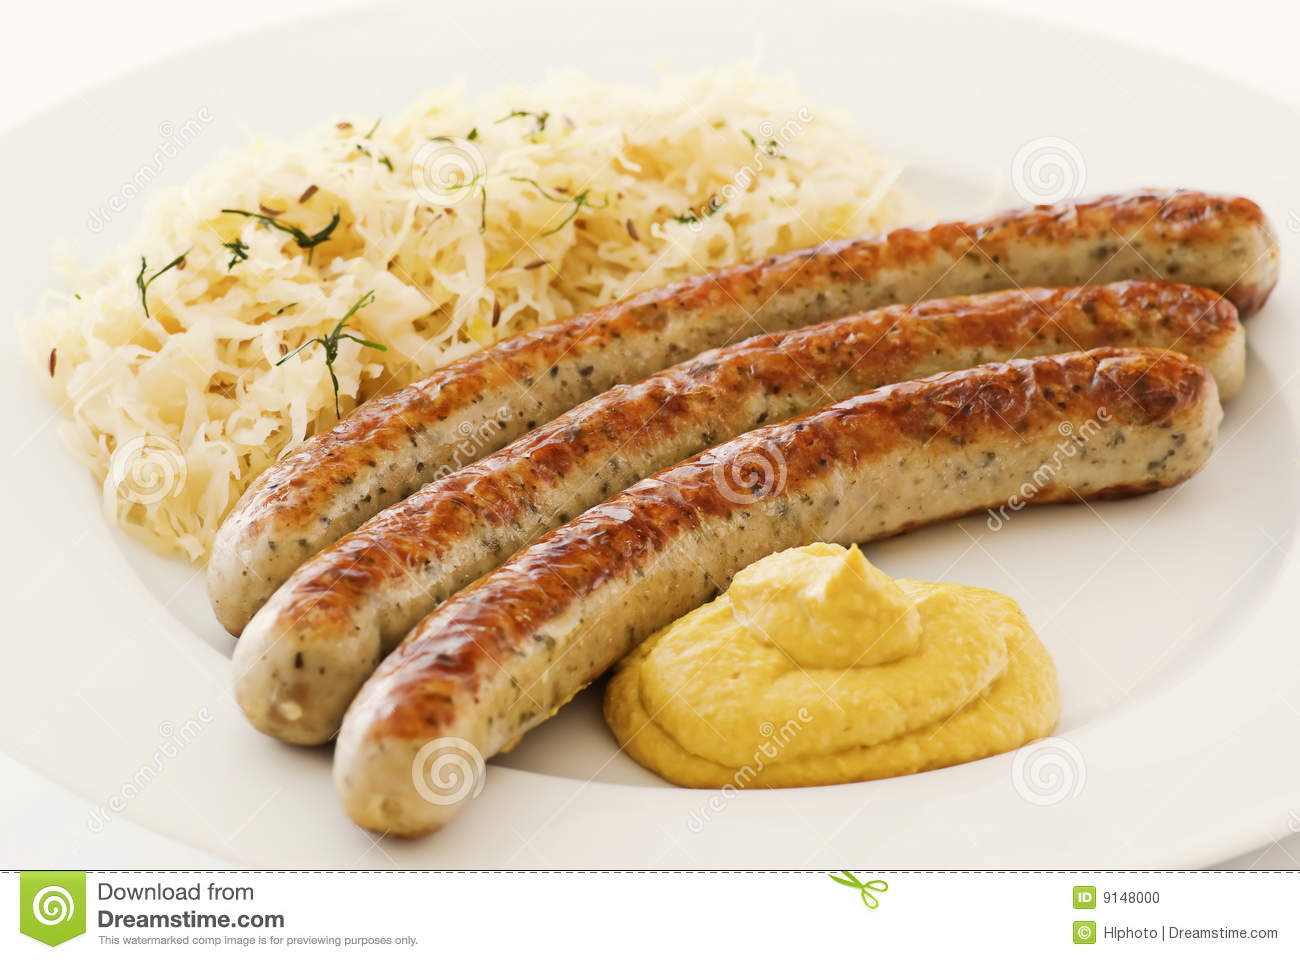 Bratwurst With Sauerkraut Stock Photo - Image: 9148000